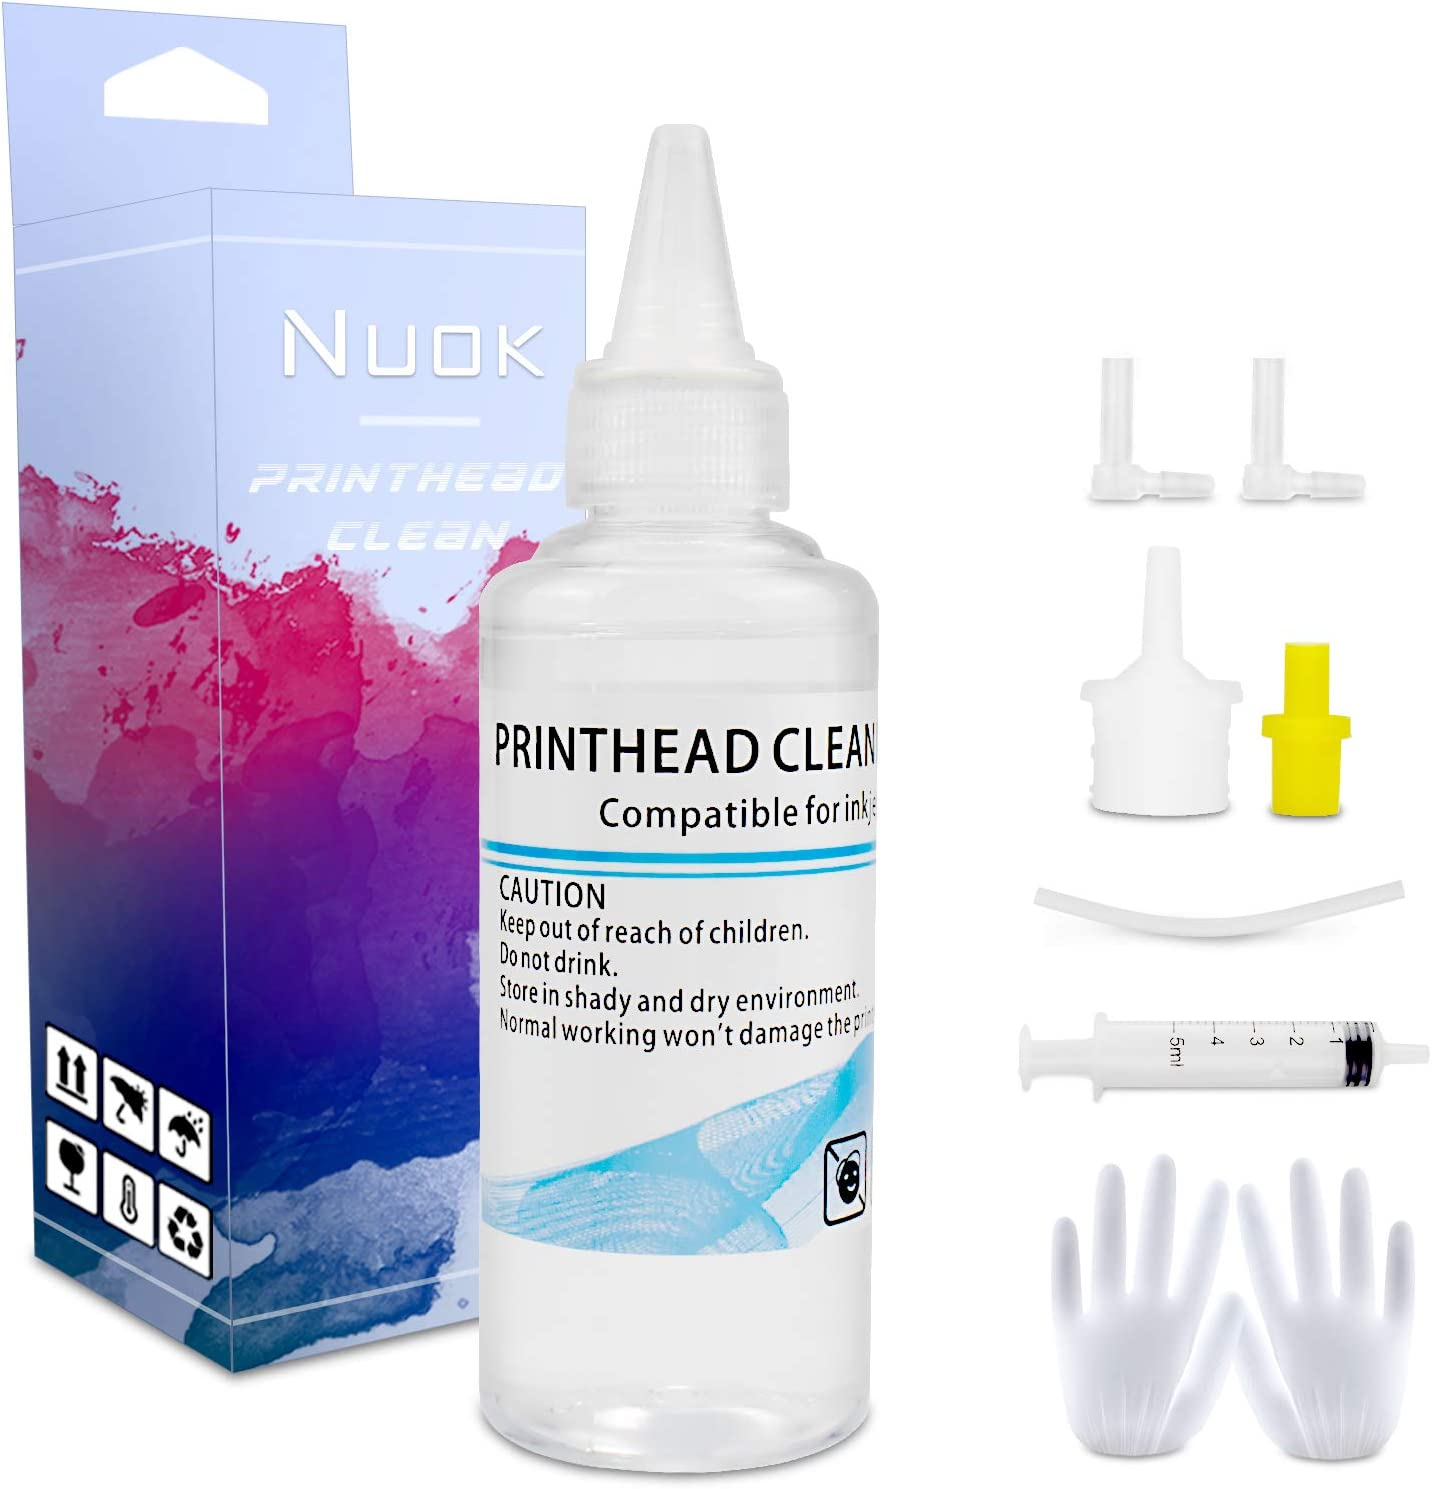 NUOK Printhead Cleaning Kit Work for Brother HP Canon Lexmark Inkjet Printer WF-7710 WF-7720 WF-3640 2550 7620 8600 8610 8620 MG5225 WF-2750 WF-2650 ET-2750 ET4750 Printer Nozzle Cleaner, 100ML